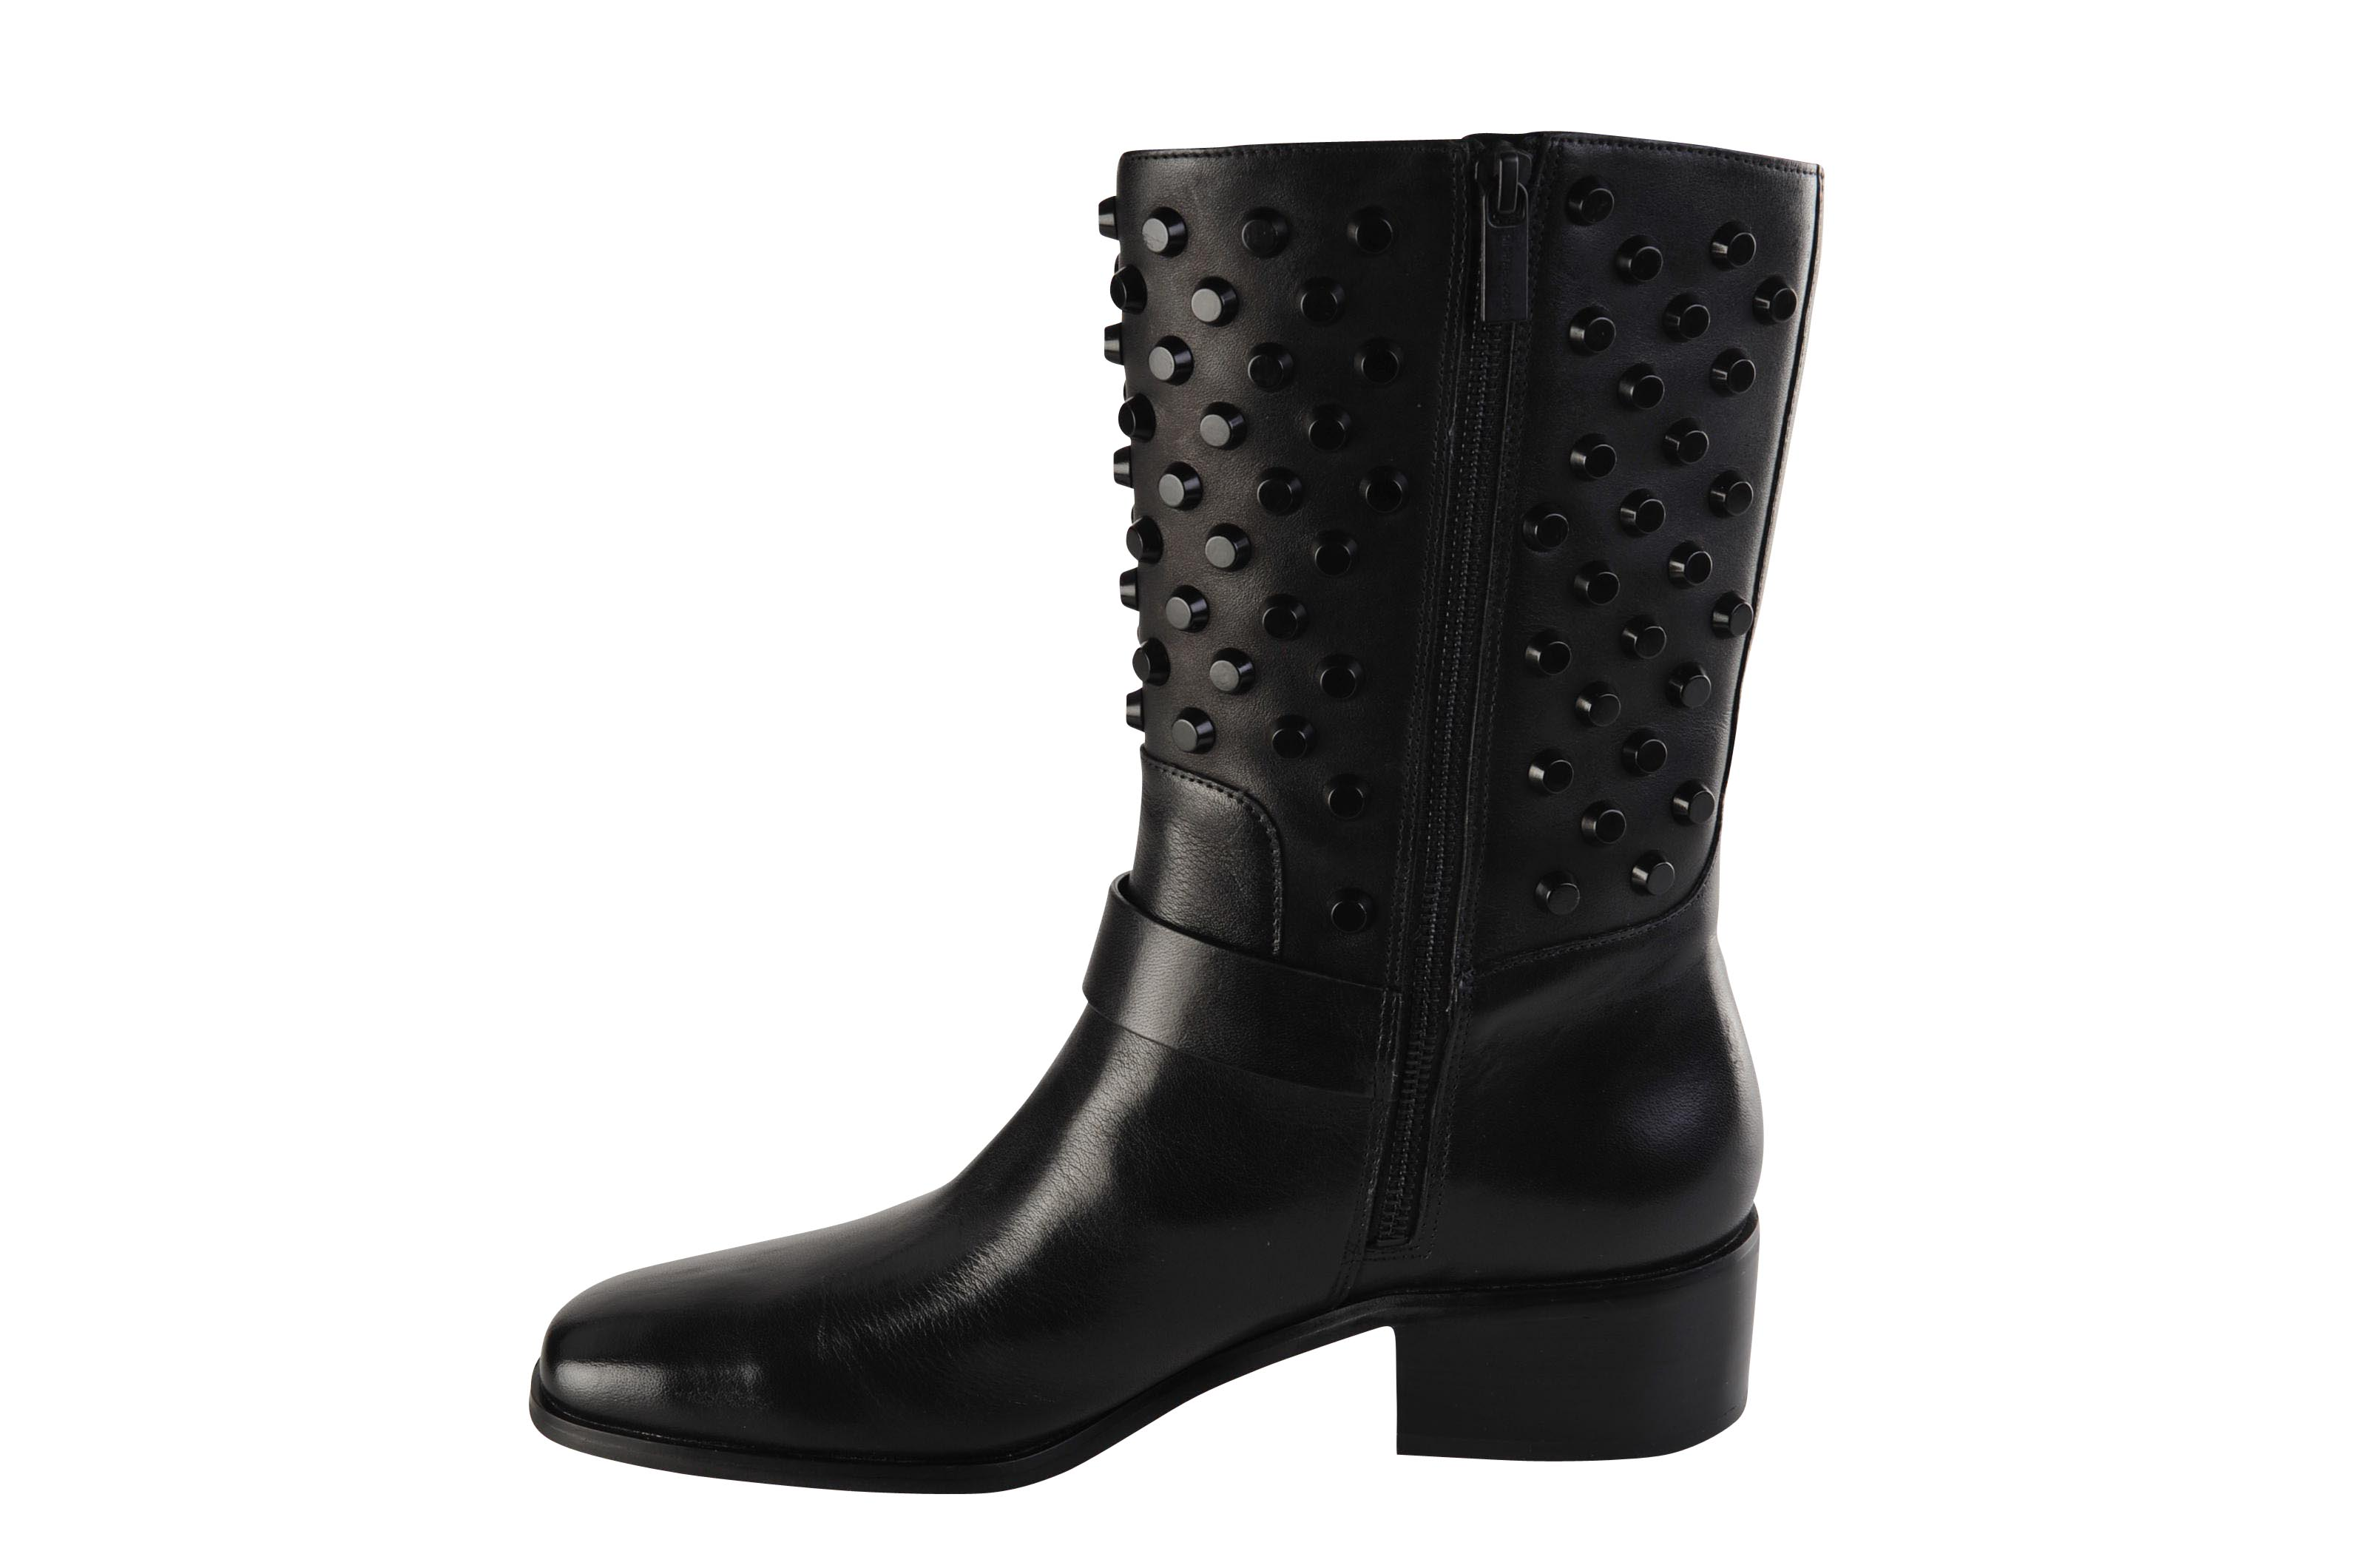 michael kors shoes women smooth leather 40 slouch boots black ebay. Black Bedroom Furniture Sets. Home Design Ideas